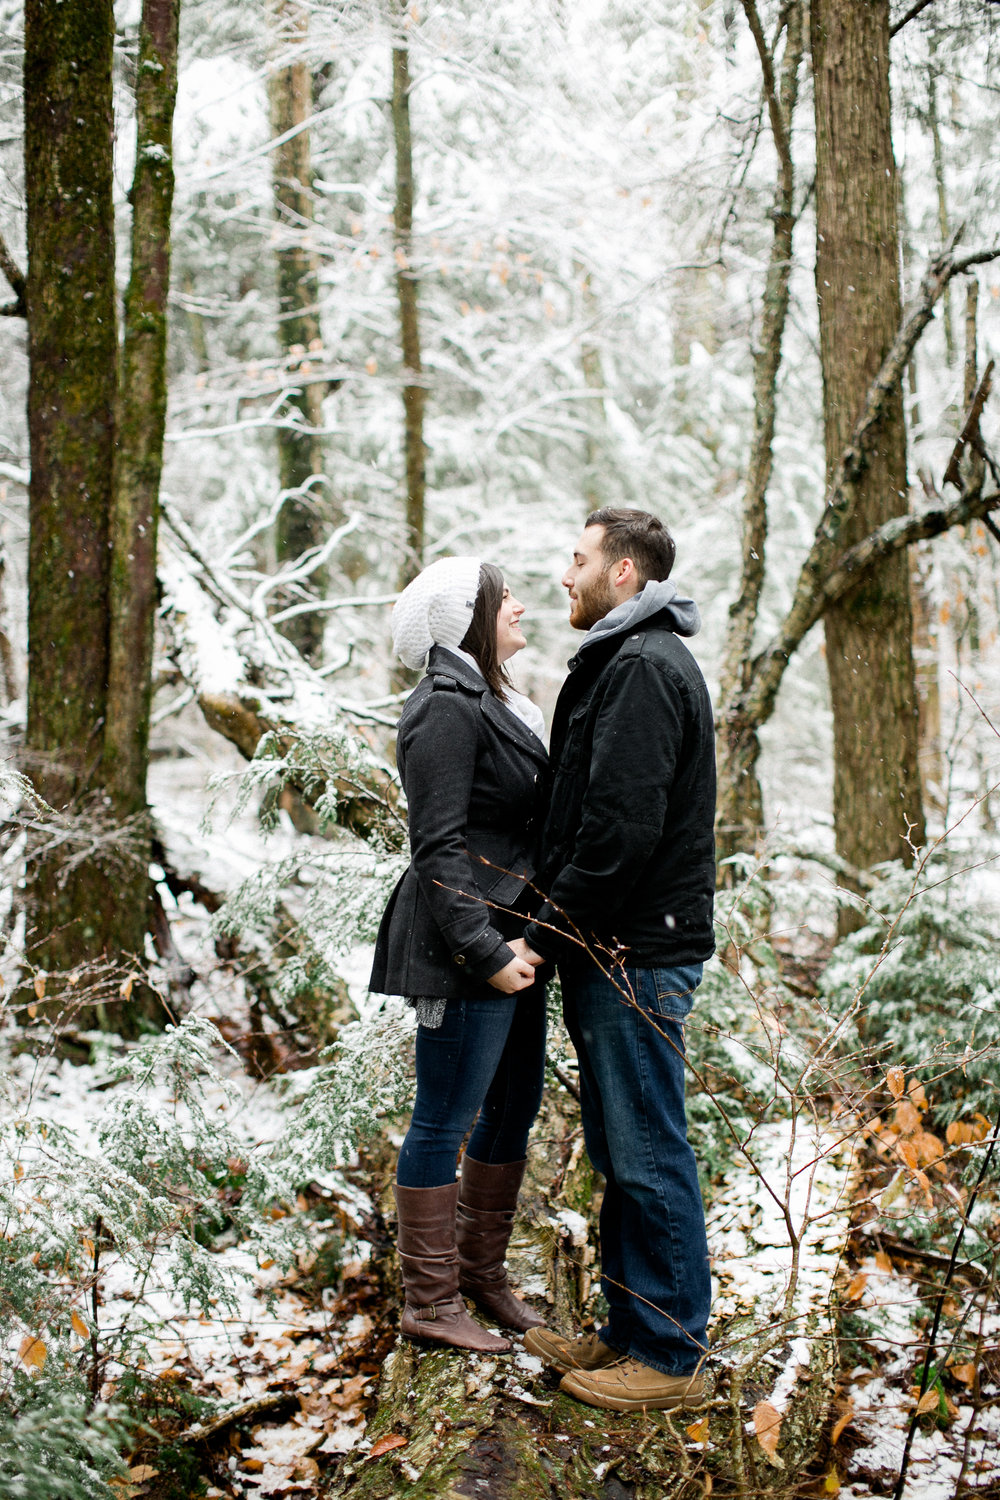 M+Q_Engagement (121 of 159).jpg